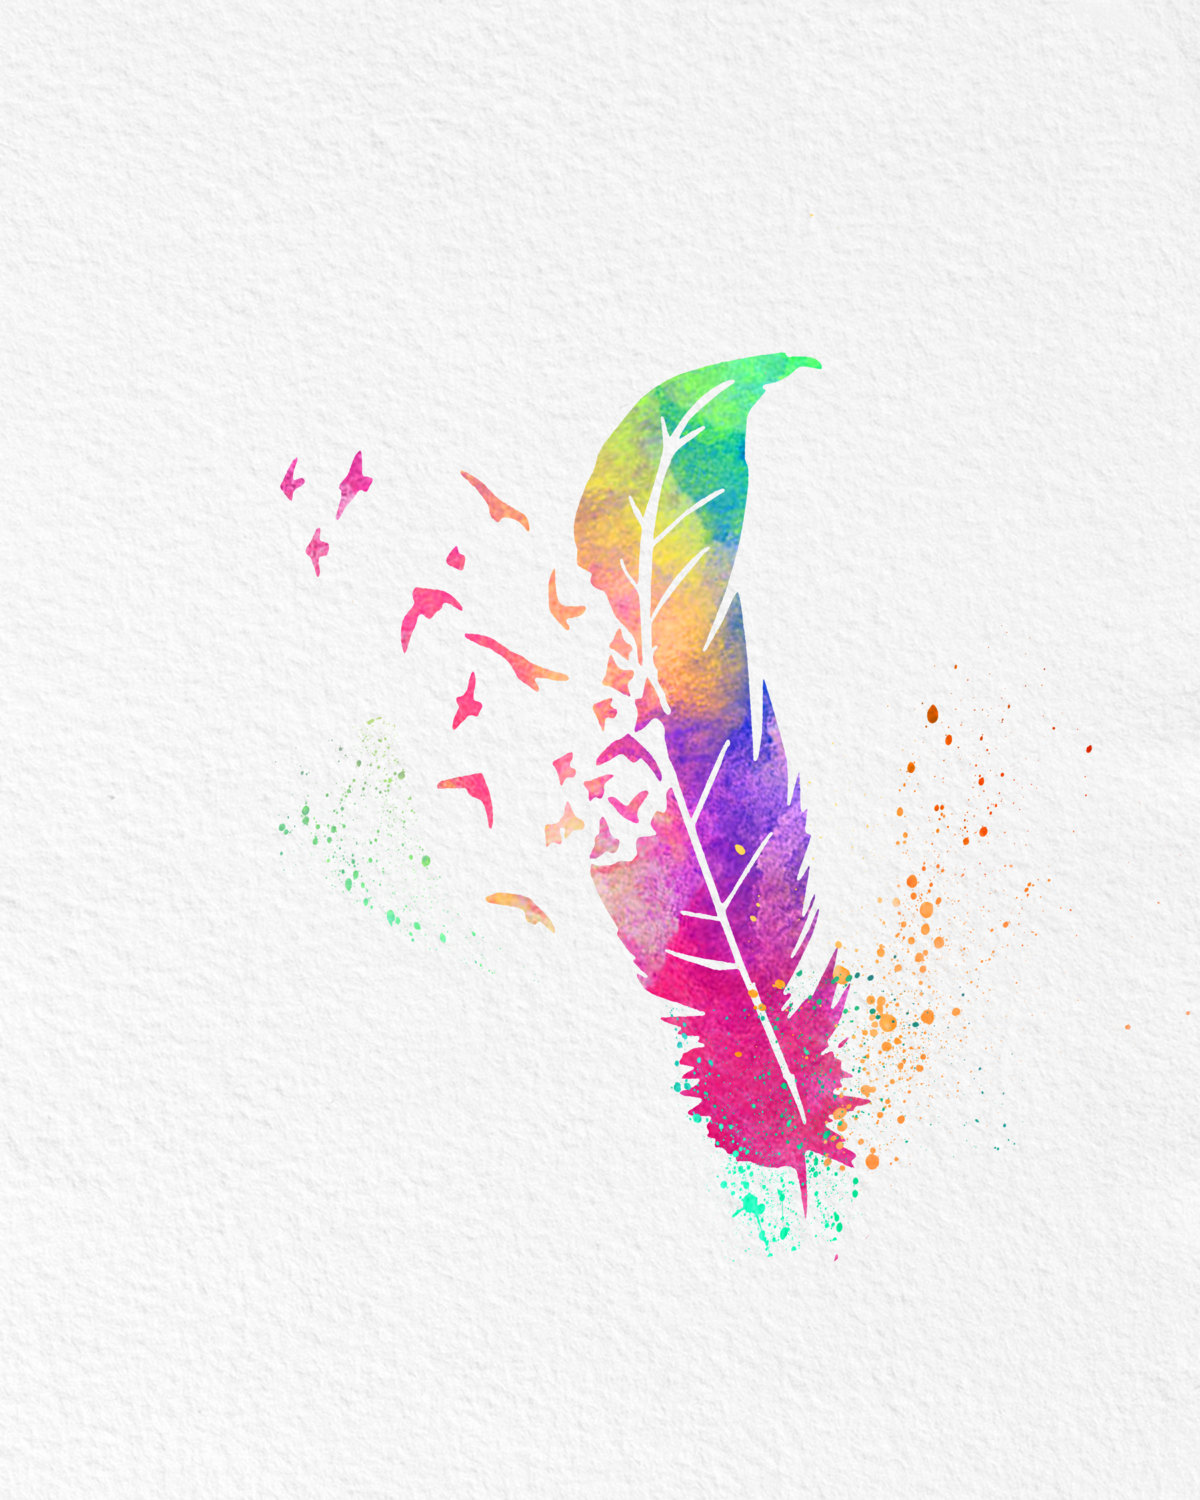 How To Design Your Own Home Online Free Watercolor Art Feather Into Birds Gift Modern 8x10 Wall